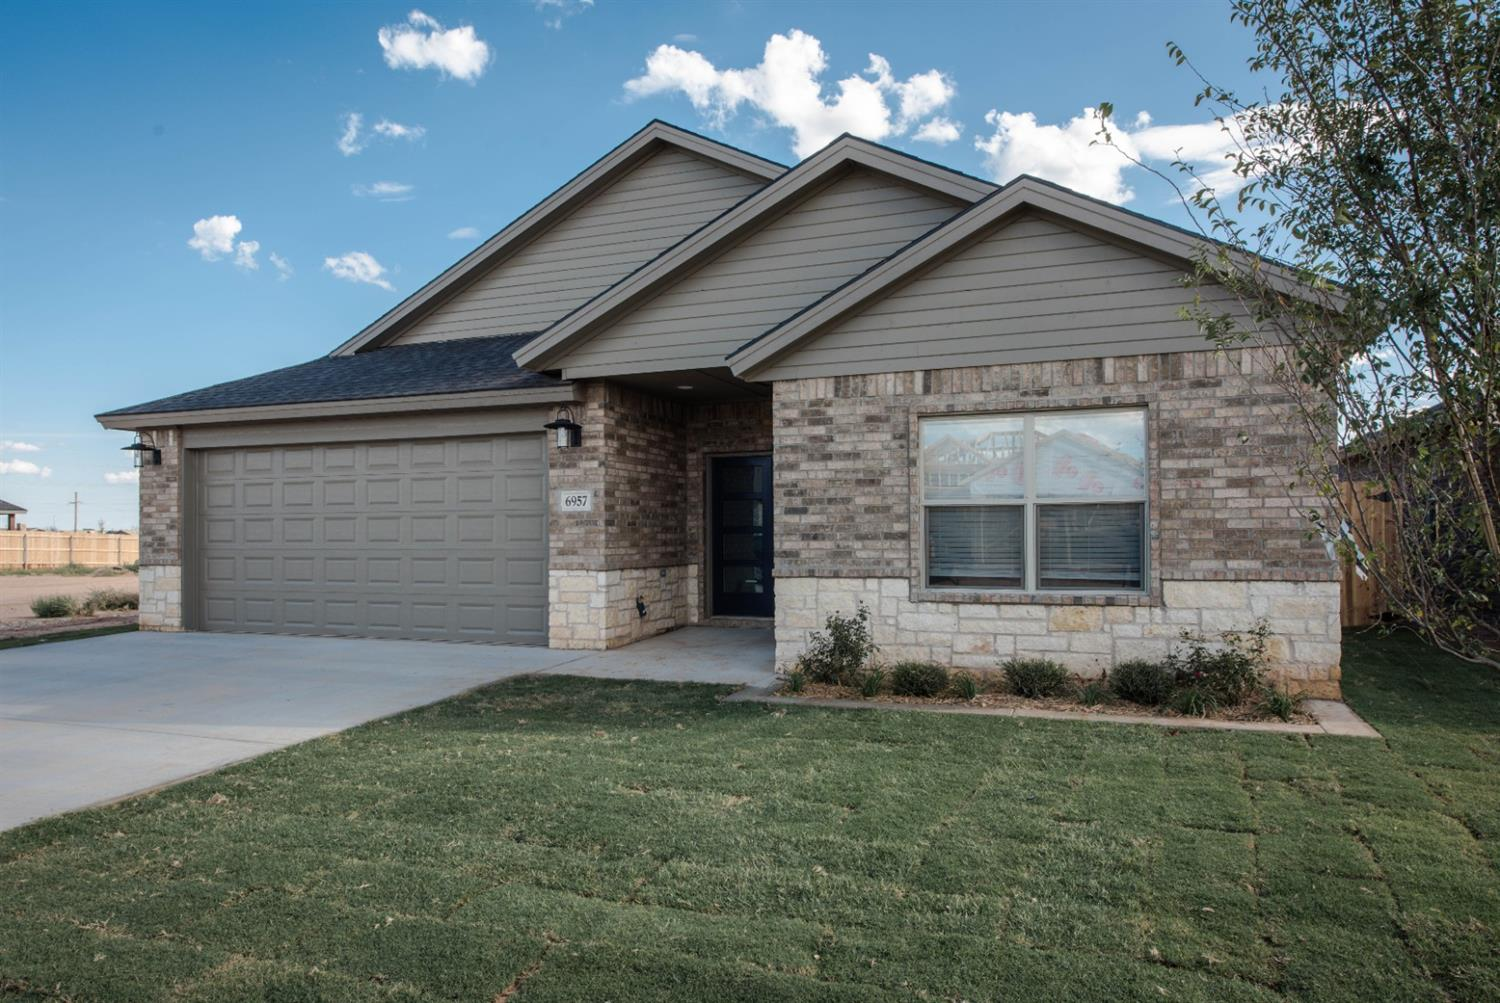 This newly constructed 3 bedroom 2 bath house by Paramount Homes is located in the growing Bushland Springs subdivision in West Lubbock. This home features an open floor plan with tile throughout, a large kitchen and island, and an isolated master suite. Paramount Homes prides itself on quality construction techniques and top-notch customer service. Give us a call today to see this beautiful home that you're sure to fall in love with.